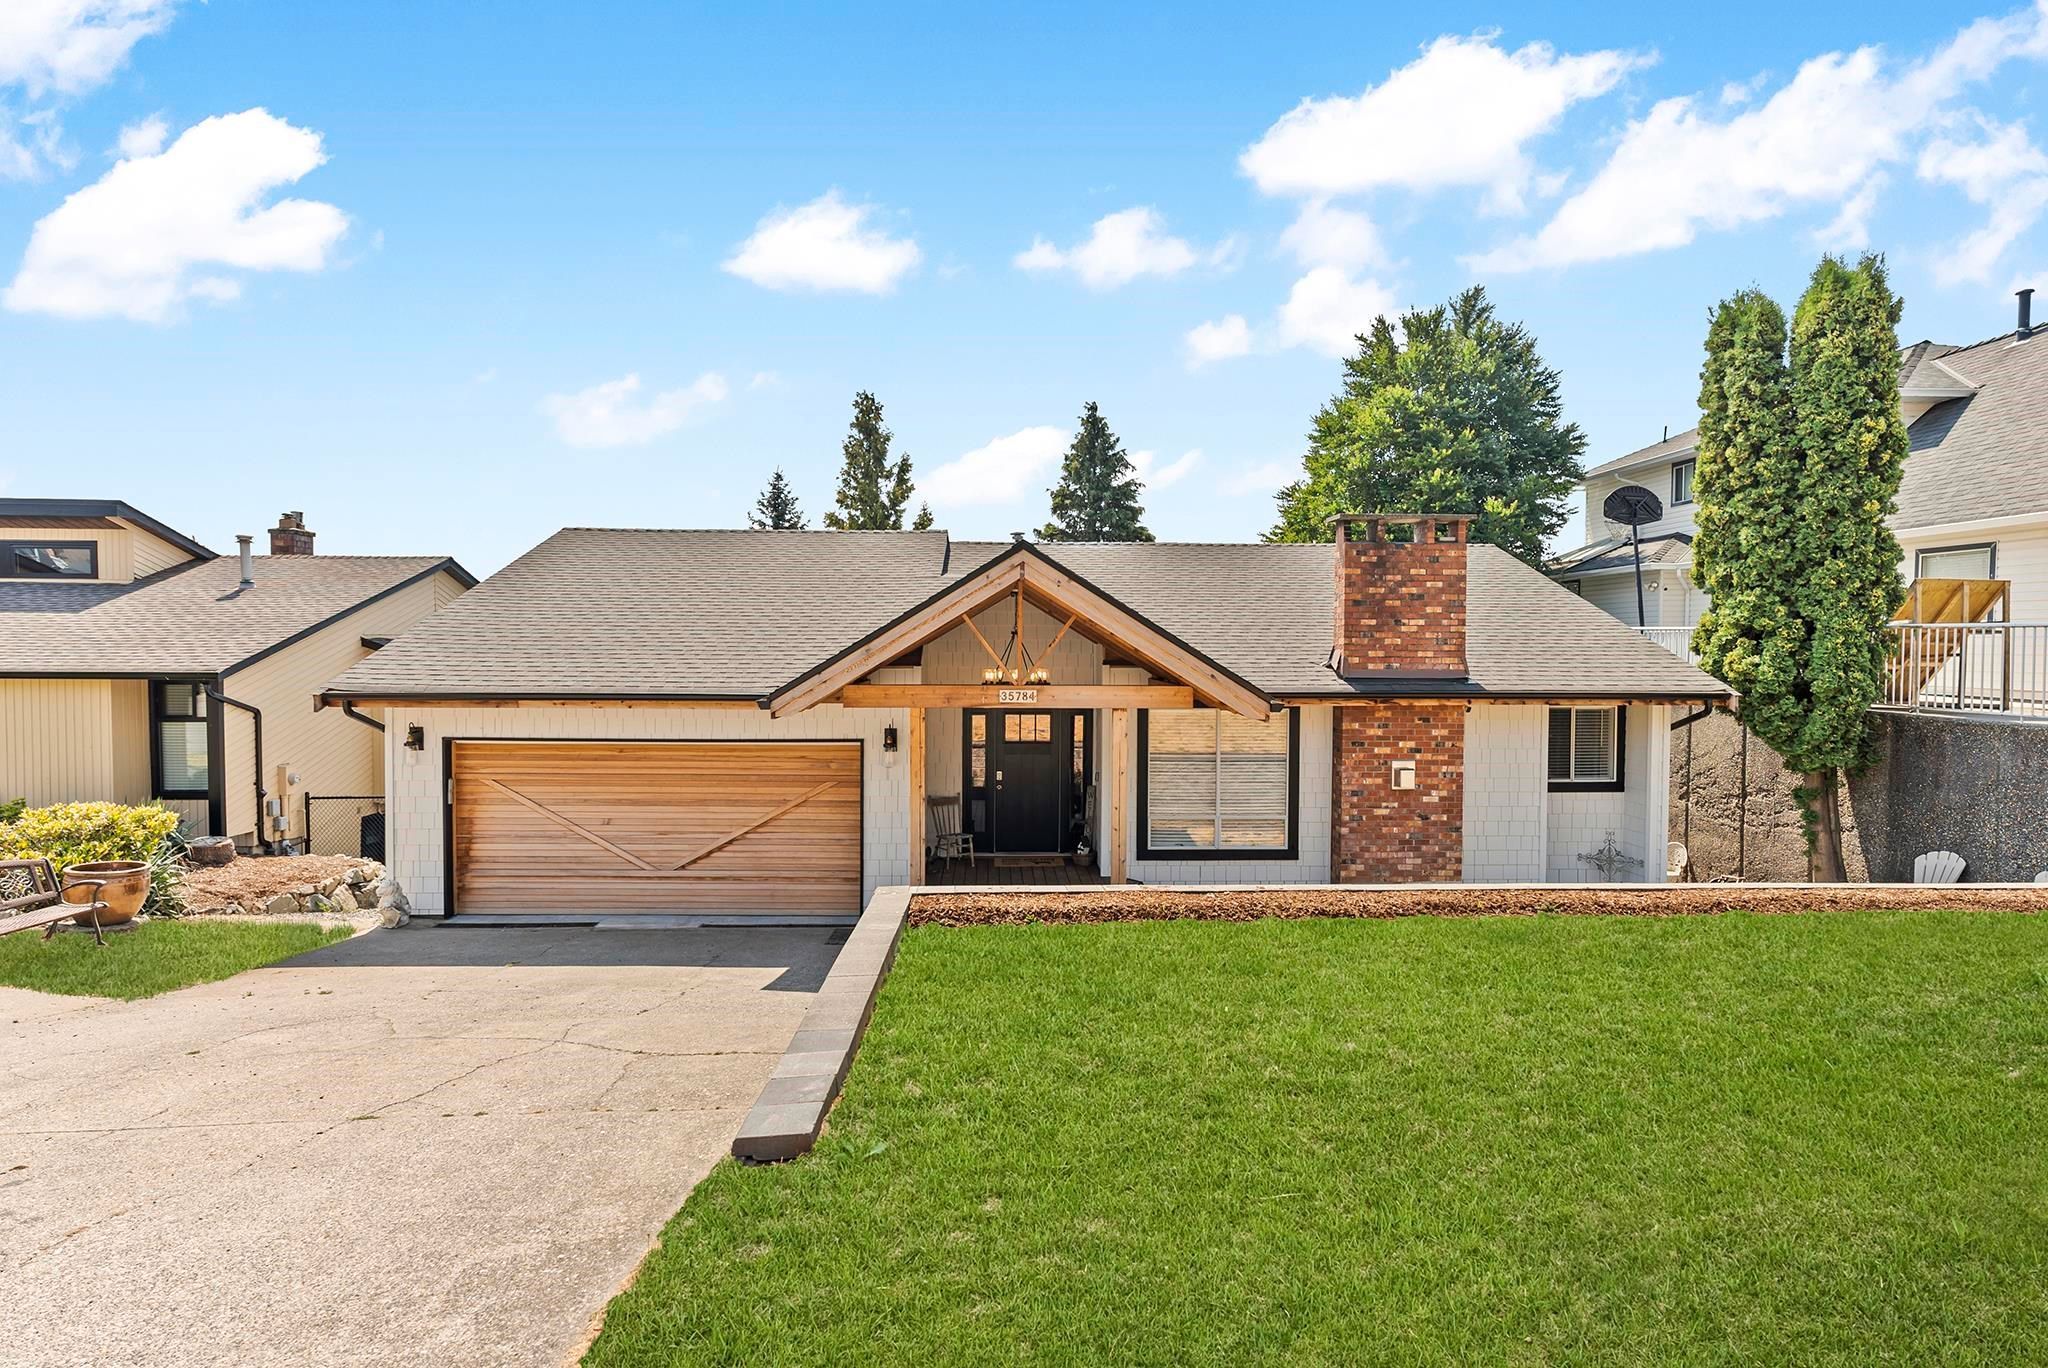 """Main Photo: 35784 SUNRIDGE Place in Abbotsford: Abbotsford East House for sale in """"MOUNTAIN VILLAGE"""" : MLS®# R2614606"""